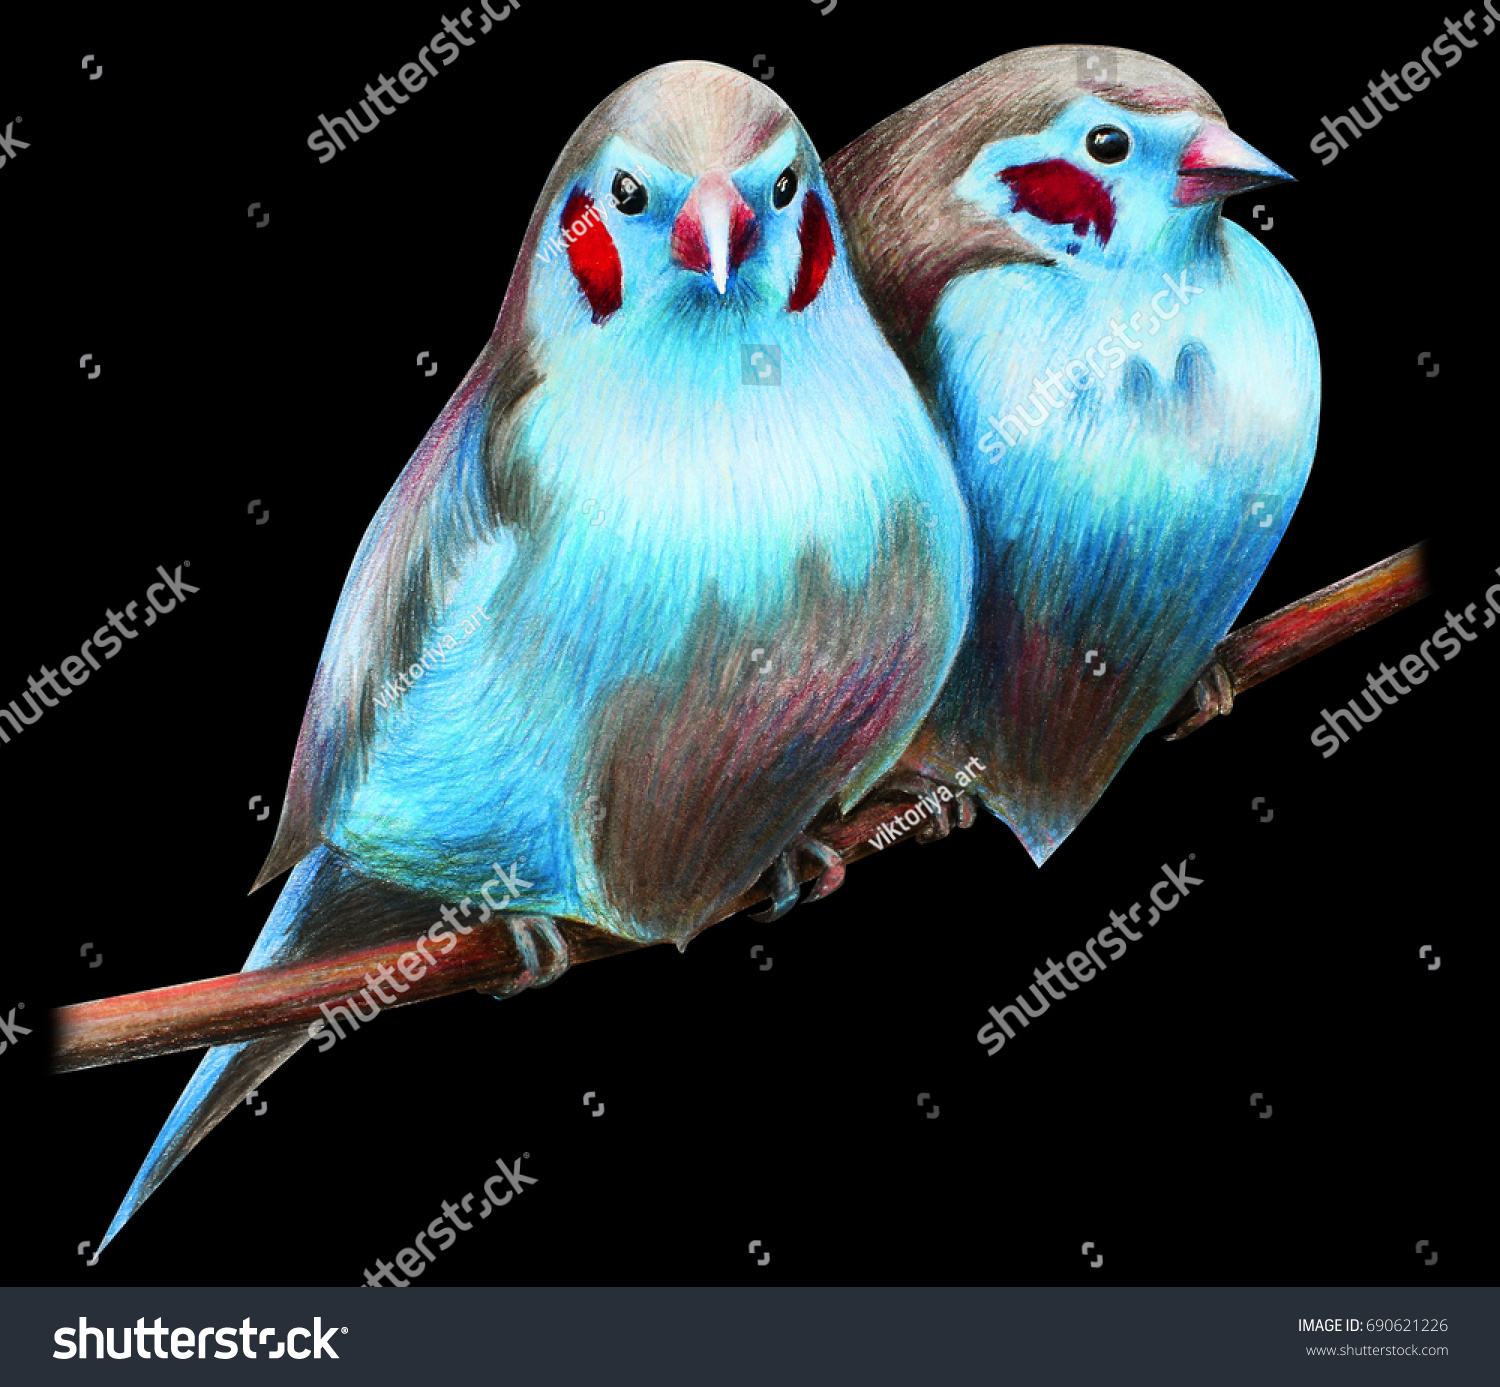 Cordon blue finch bird drawing stock illustration 690621226 cordon blue finch bird drawing biocorpaavc